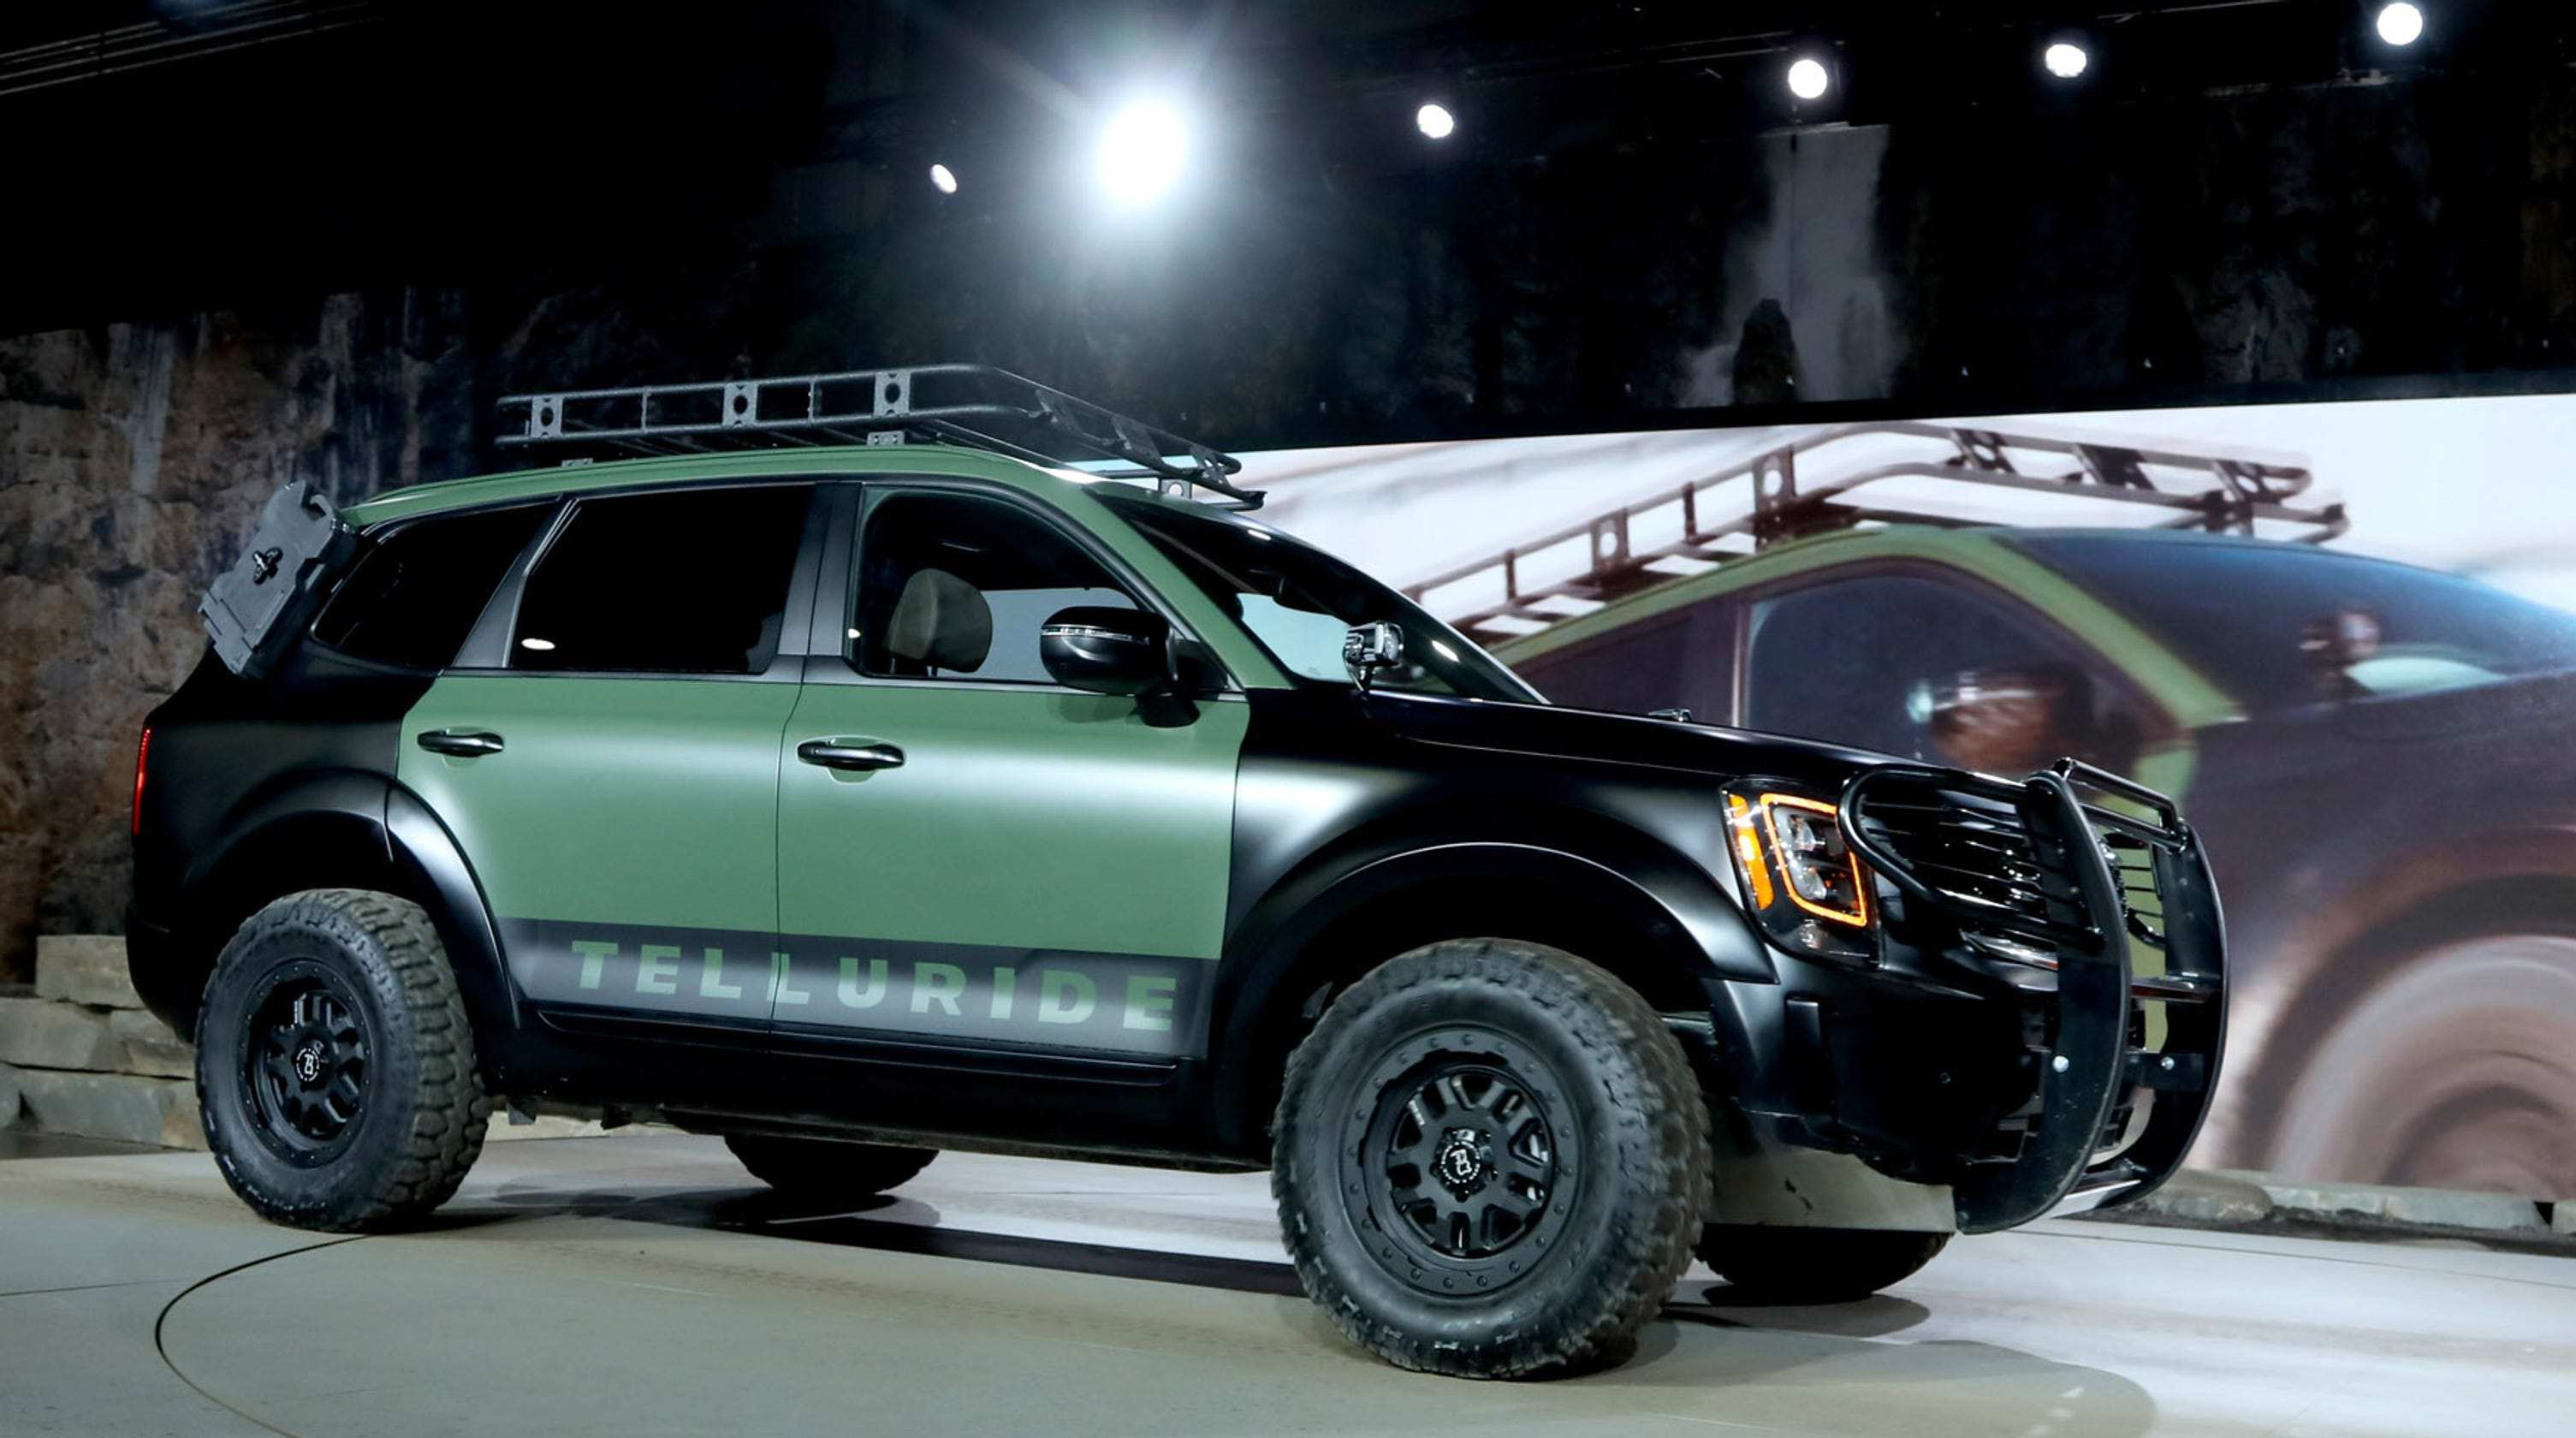 47 New Telluride Kia 2019 Price And Review